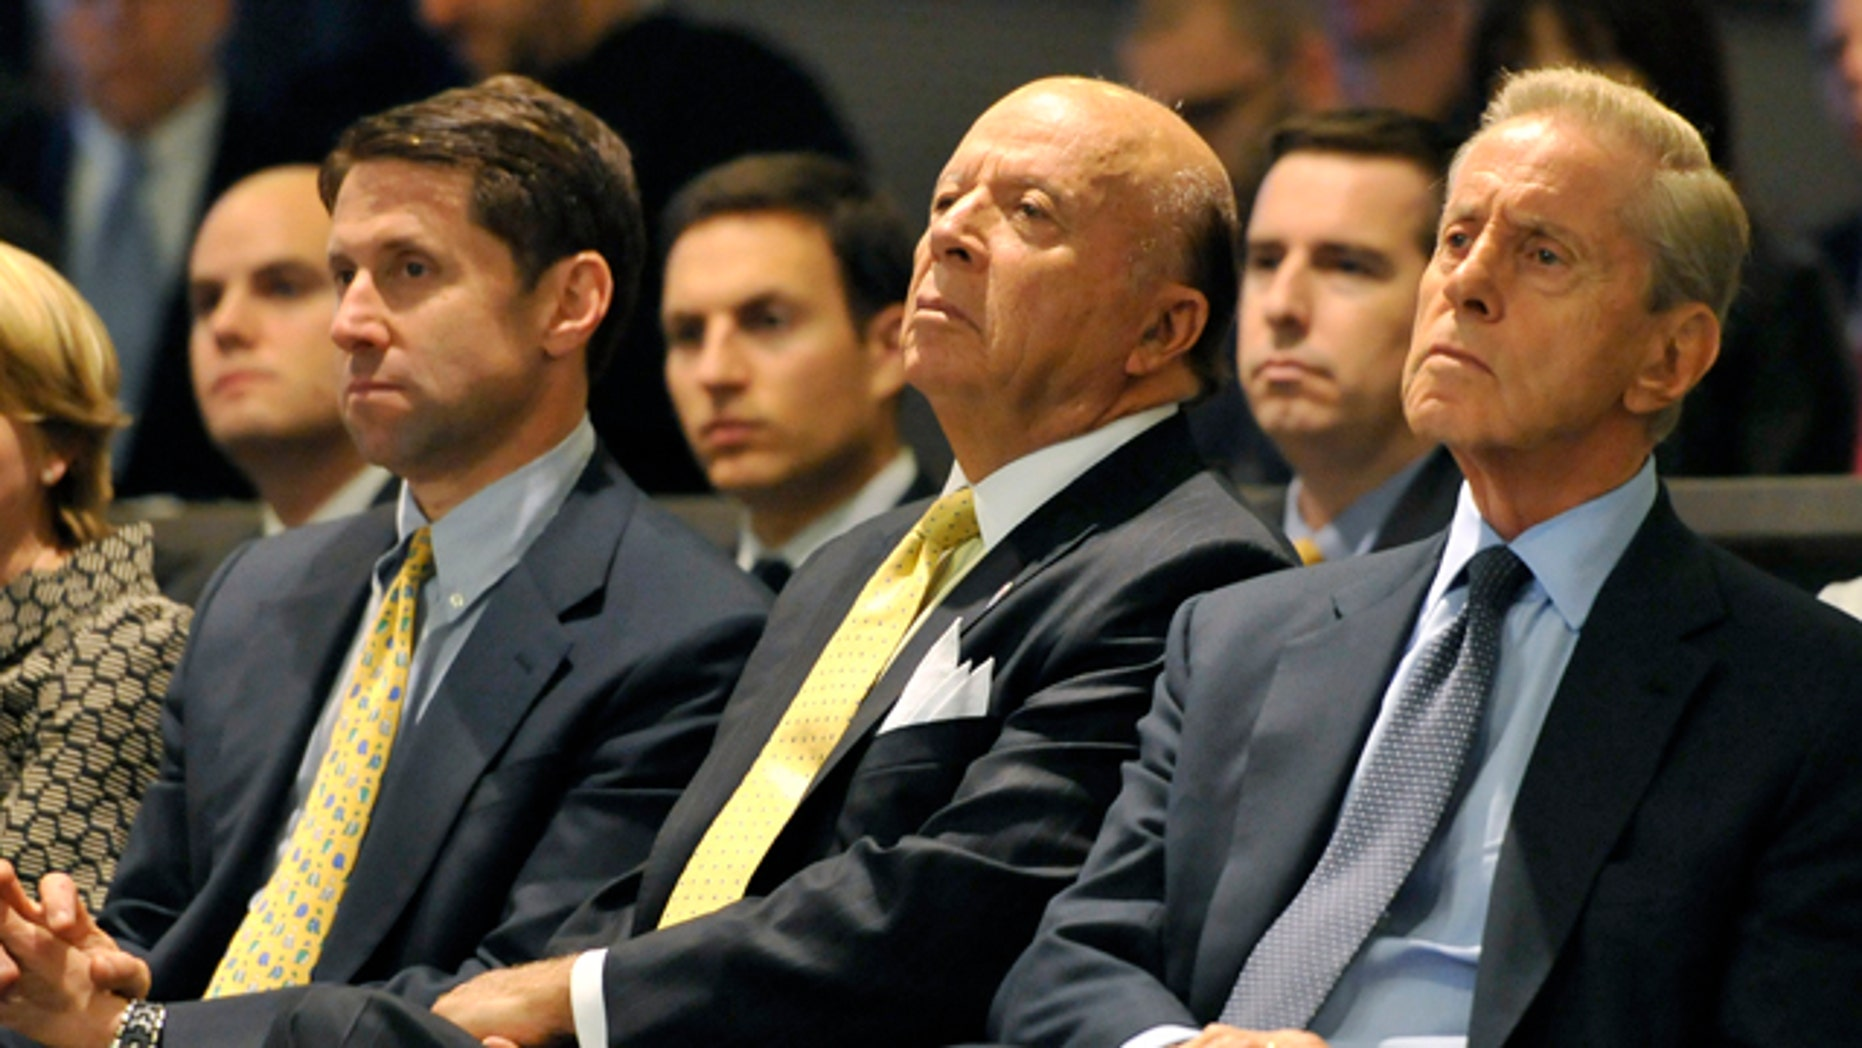 Oct. 29, 2010: FILE - This photo shows New York Mets owners from left, Jeff Wilpon, Saul Katz and Fred Wilpon during a baseball news conference in New York. The Mets owners and a trustee for Bernard Madoff's fraud victims have settled for $162 million.